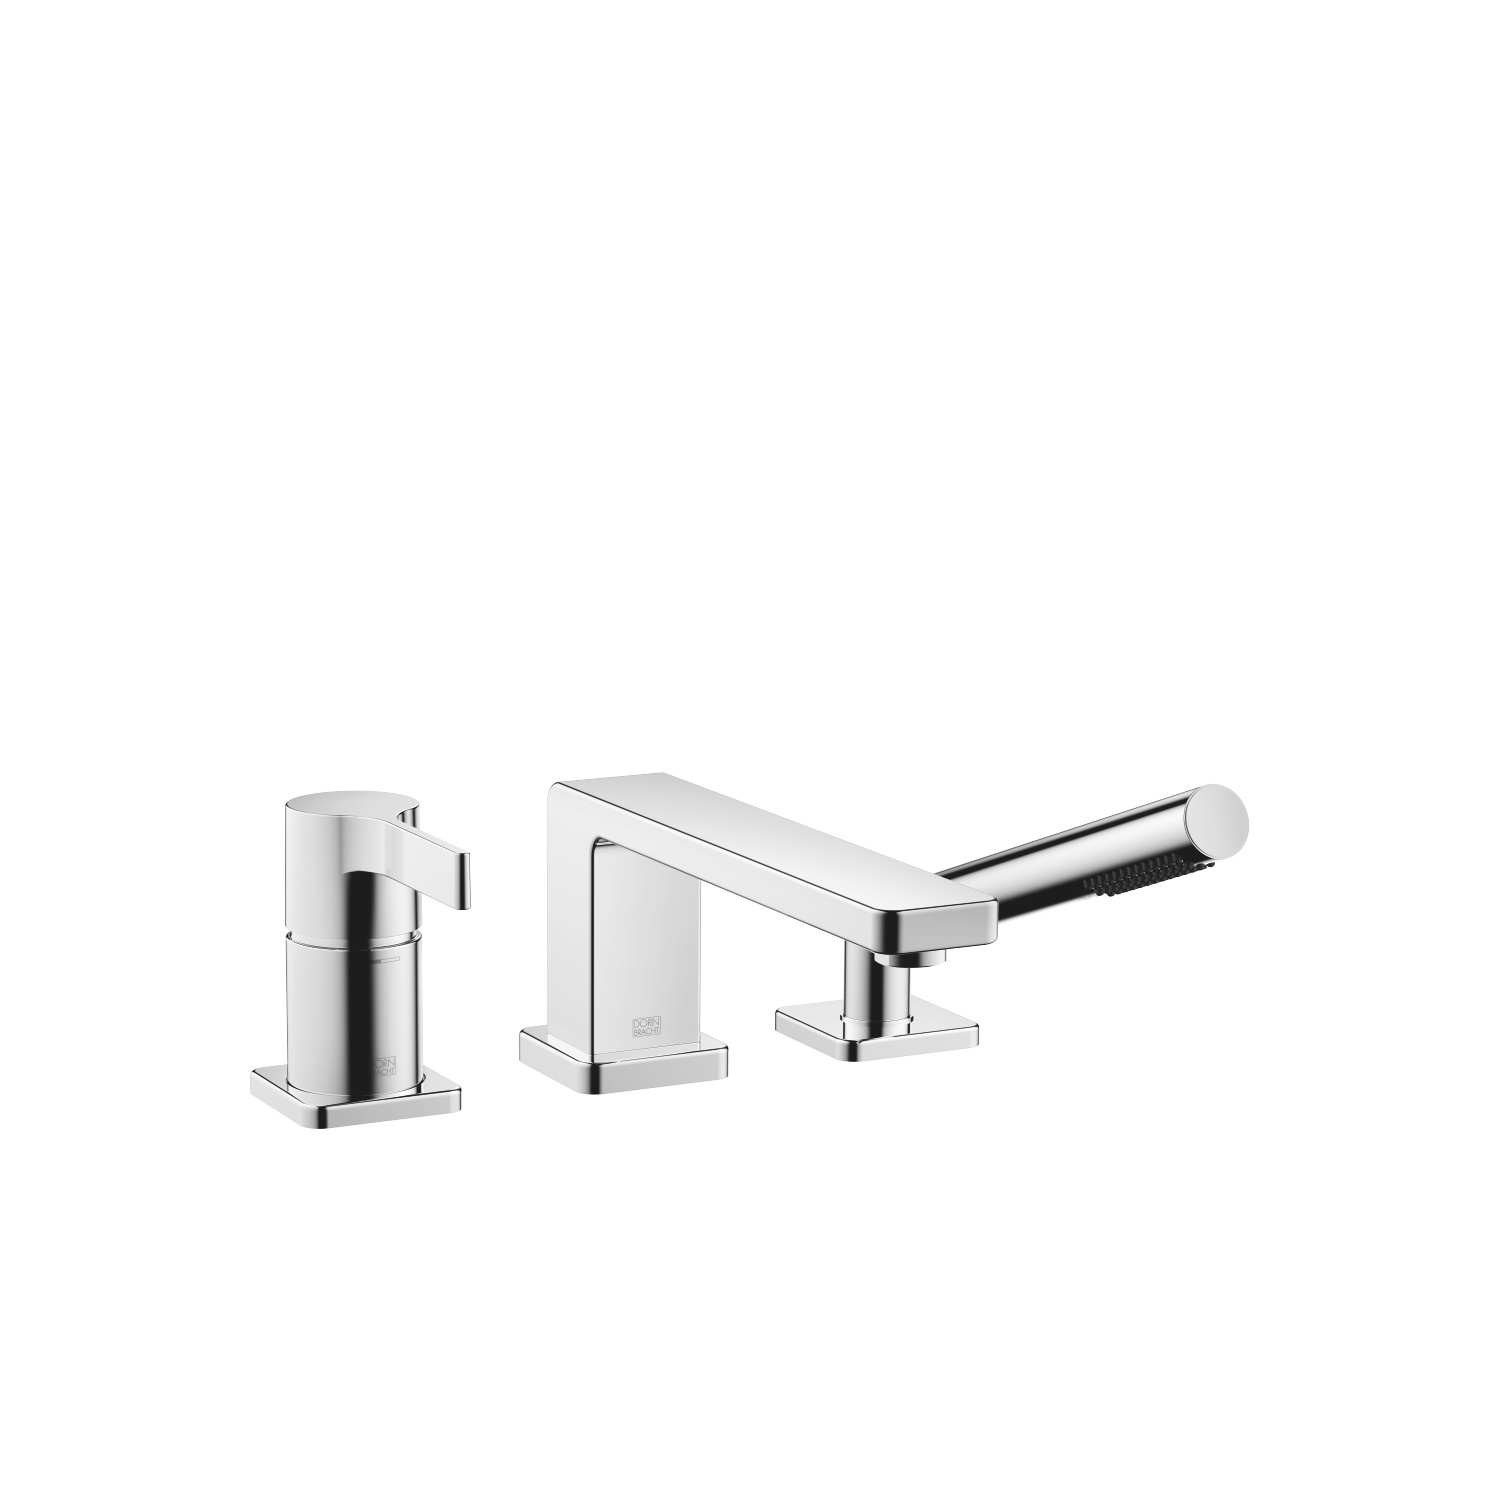 Three-hole single-lever tub mixer for deck-mounted tub installation - polished chrome